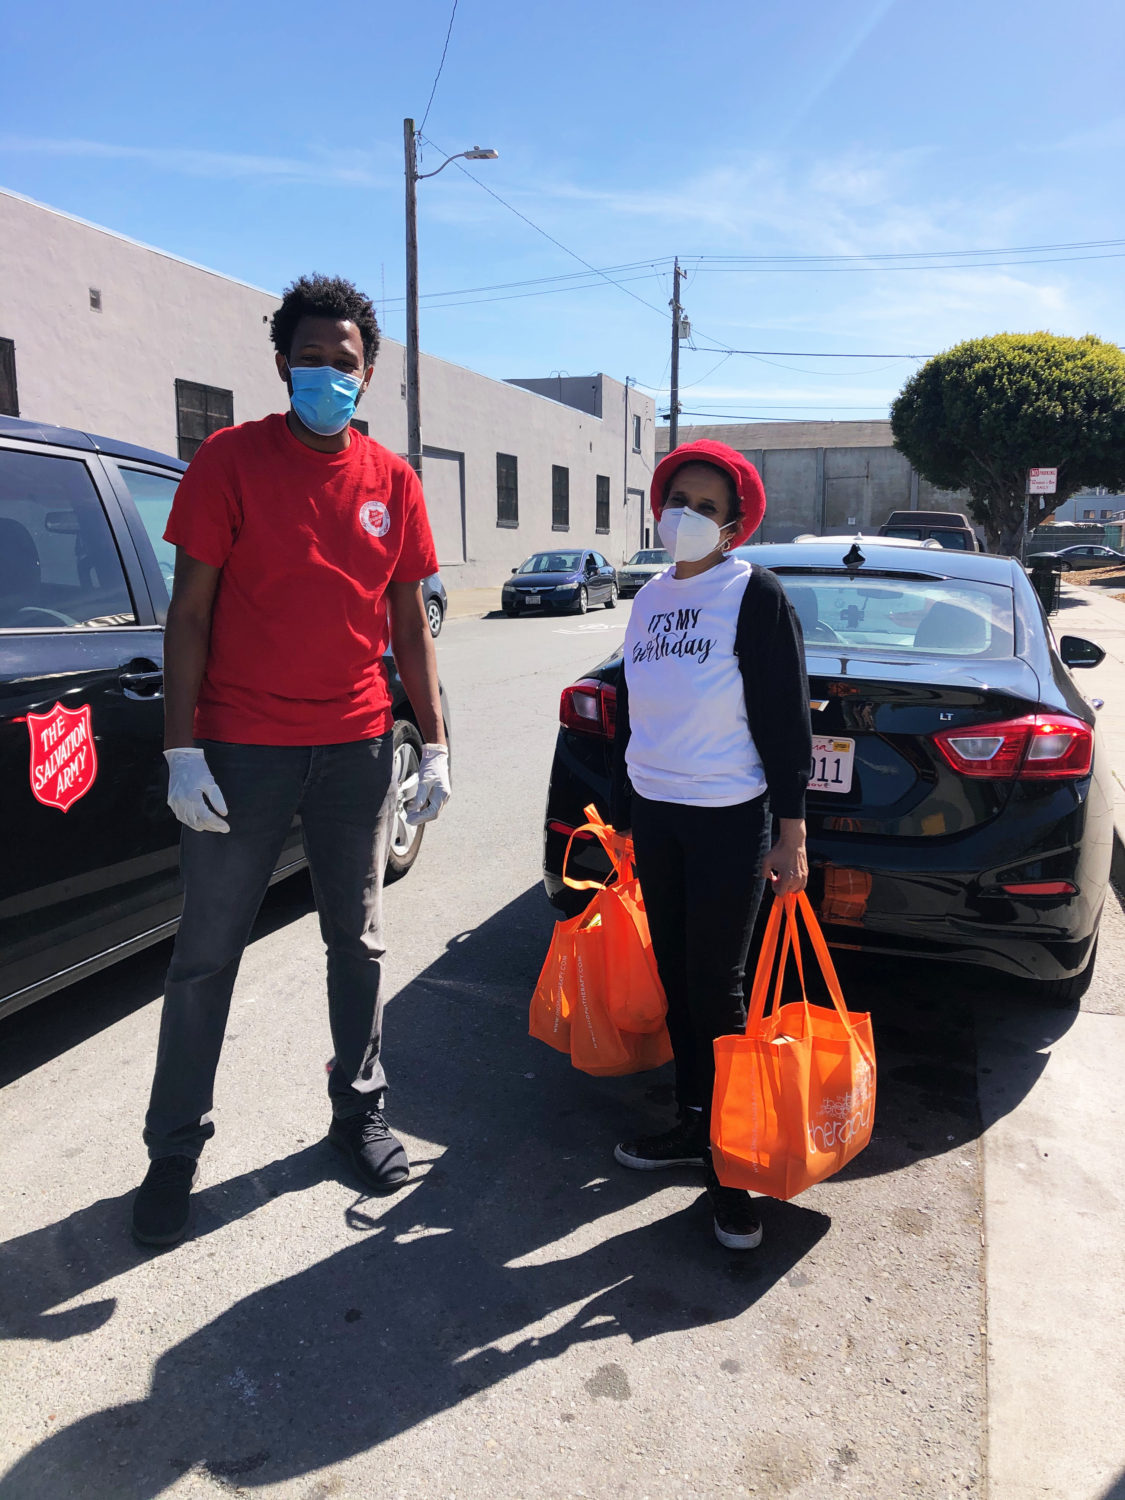 Beds-4-Bayview-Gloria-Berry-coordinates-meal-delivery-with-Theodore-Ellington-Salvation-Army, Community seizes MLK Park as immediate COVID relief for unhoused neighbors, Local News & Views